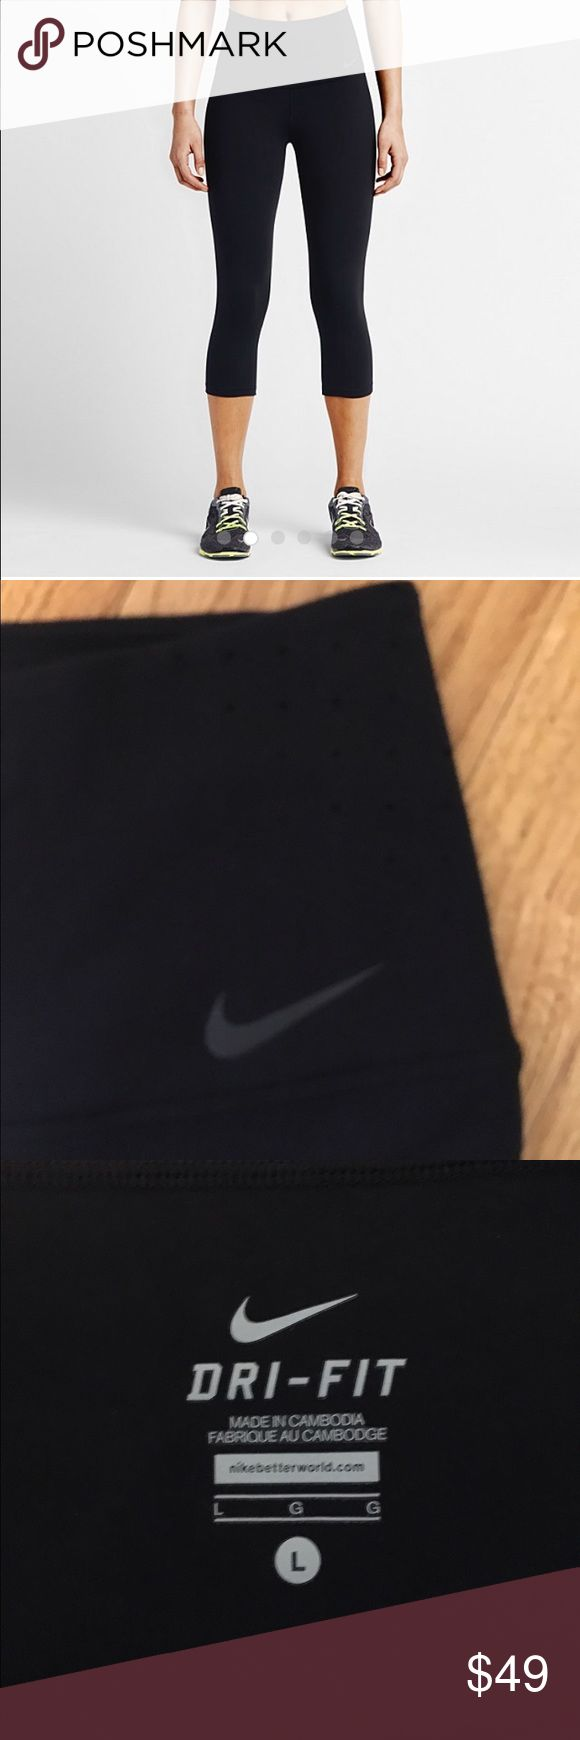 Nike NWOT sculpt training capris High-waisted training capris with figure flattering compression. Perforated waistband for breathable comfort (see pics.) Rear-flattering yoke on back. Never worn - lost the tags and receipt so couldn't return:( Nike Pants Capris